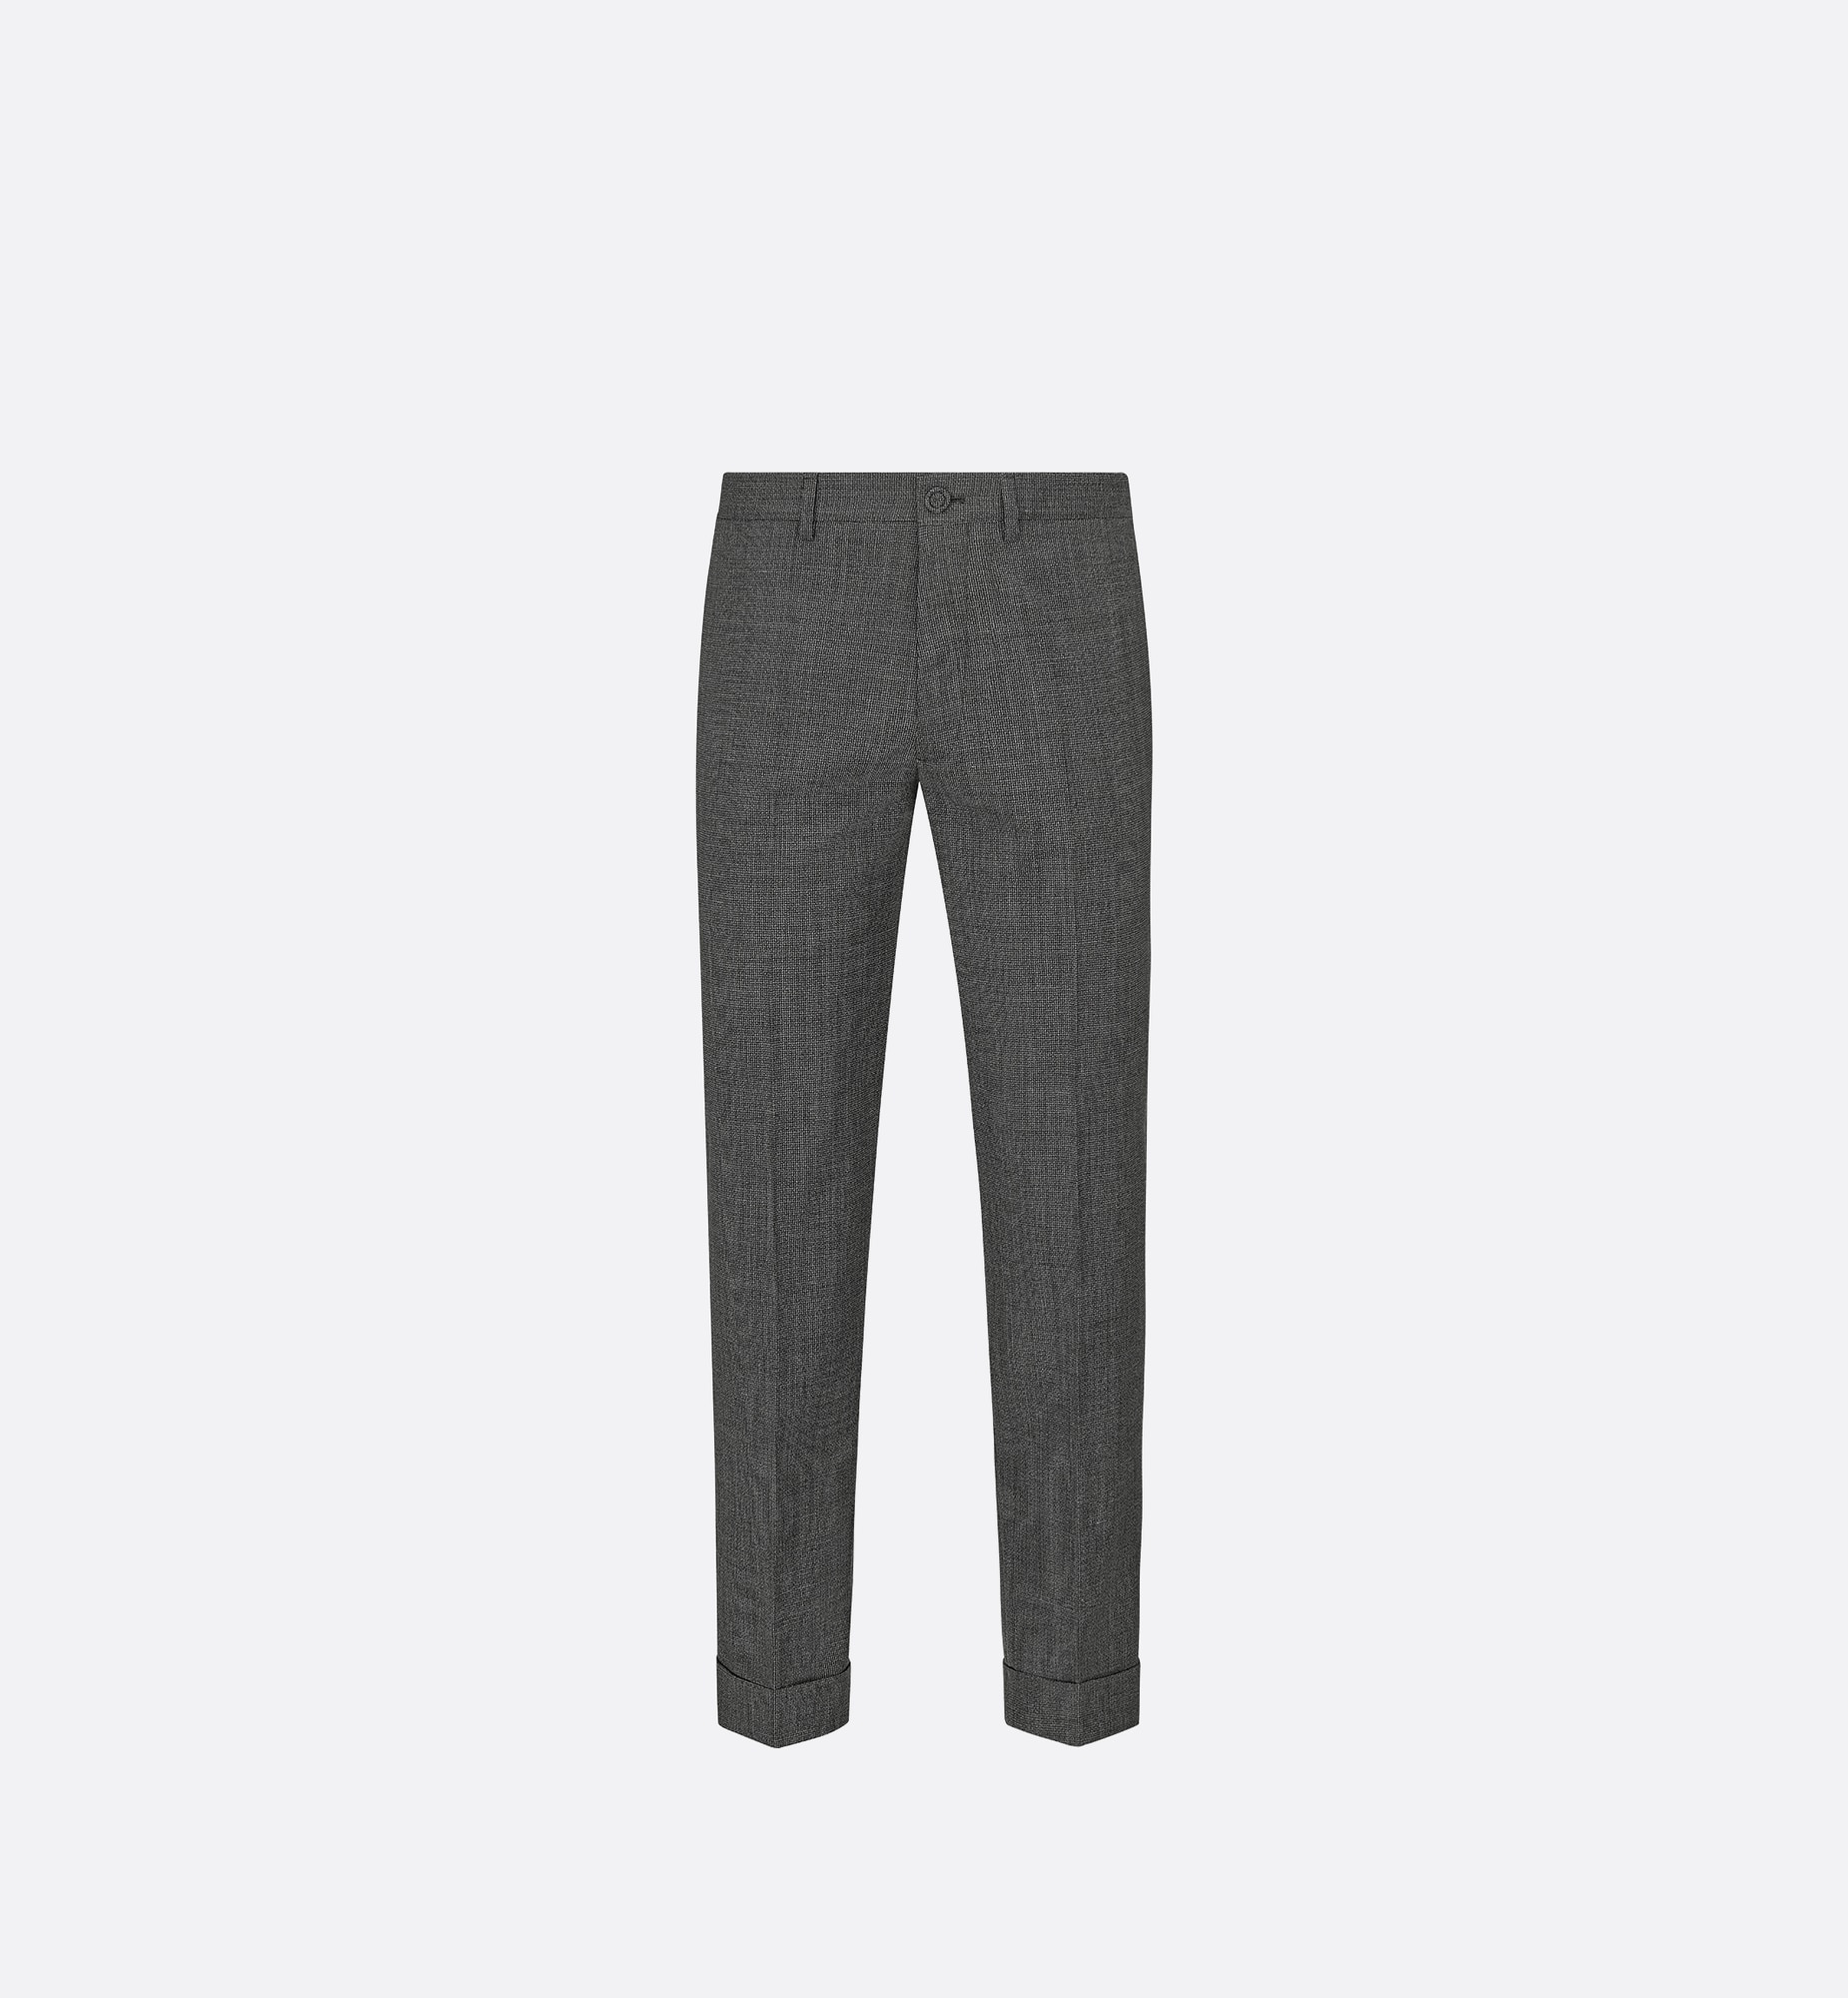 micro-houndstooth tailored chino pants with cuffs | Dior Front view